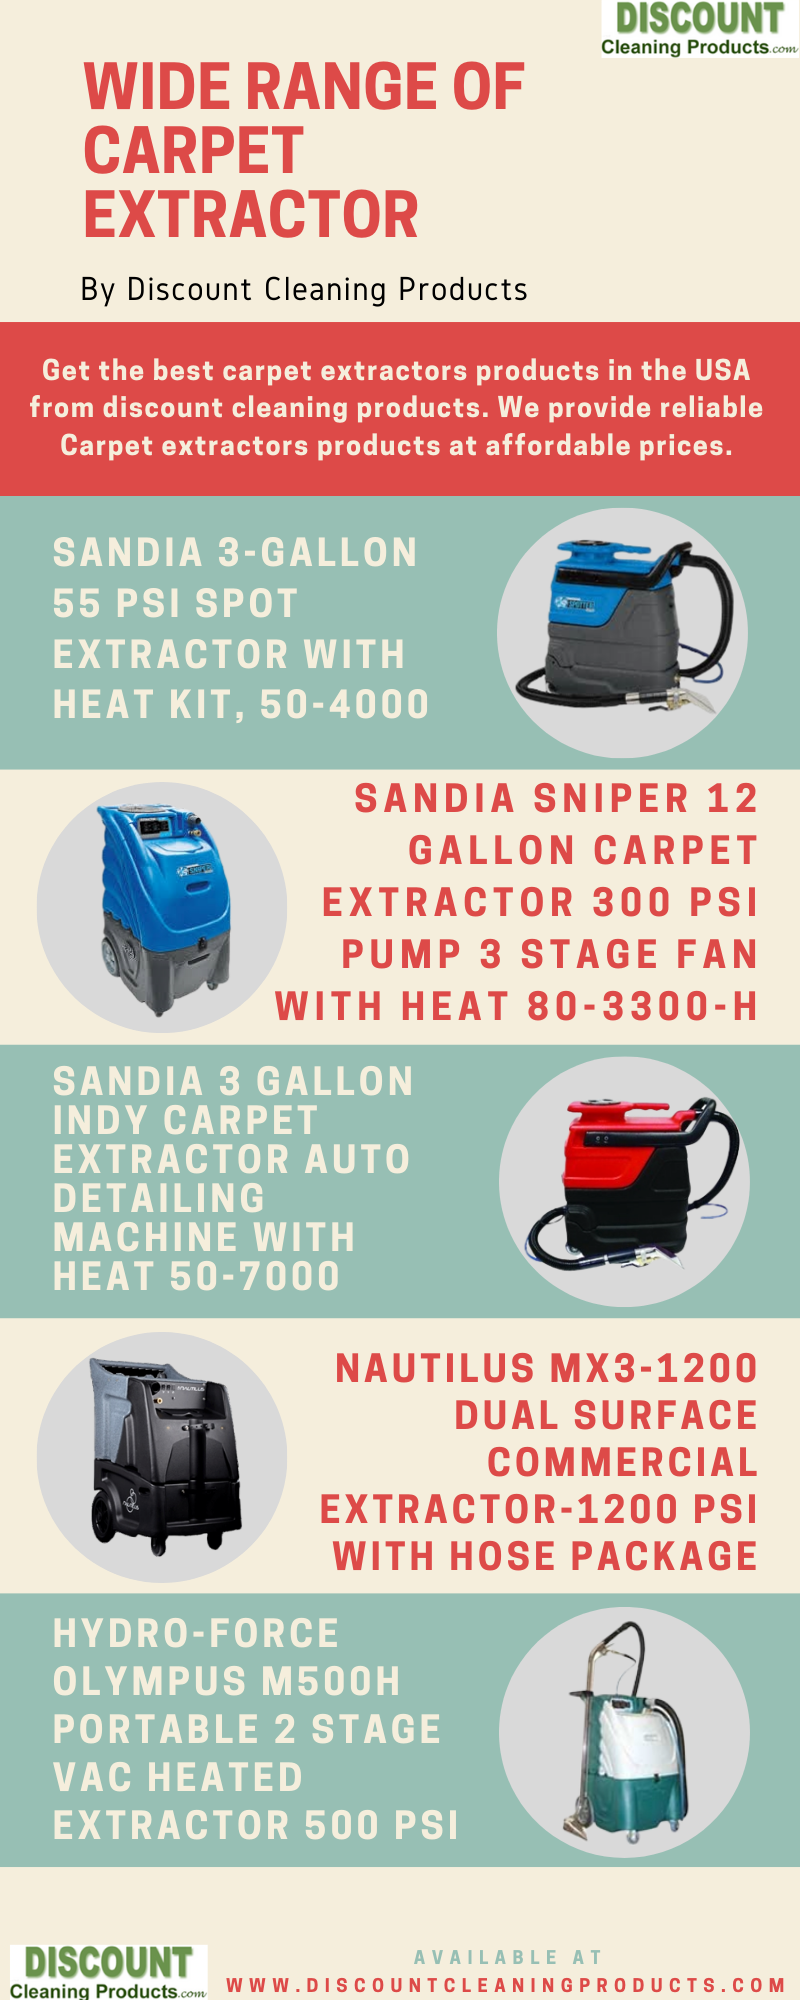 Are You Looking For The Best Carpet Extractor Products In The United States Taking Assistance From Discou Durable Carpet Discount Cleaning How To Clean Carpet